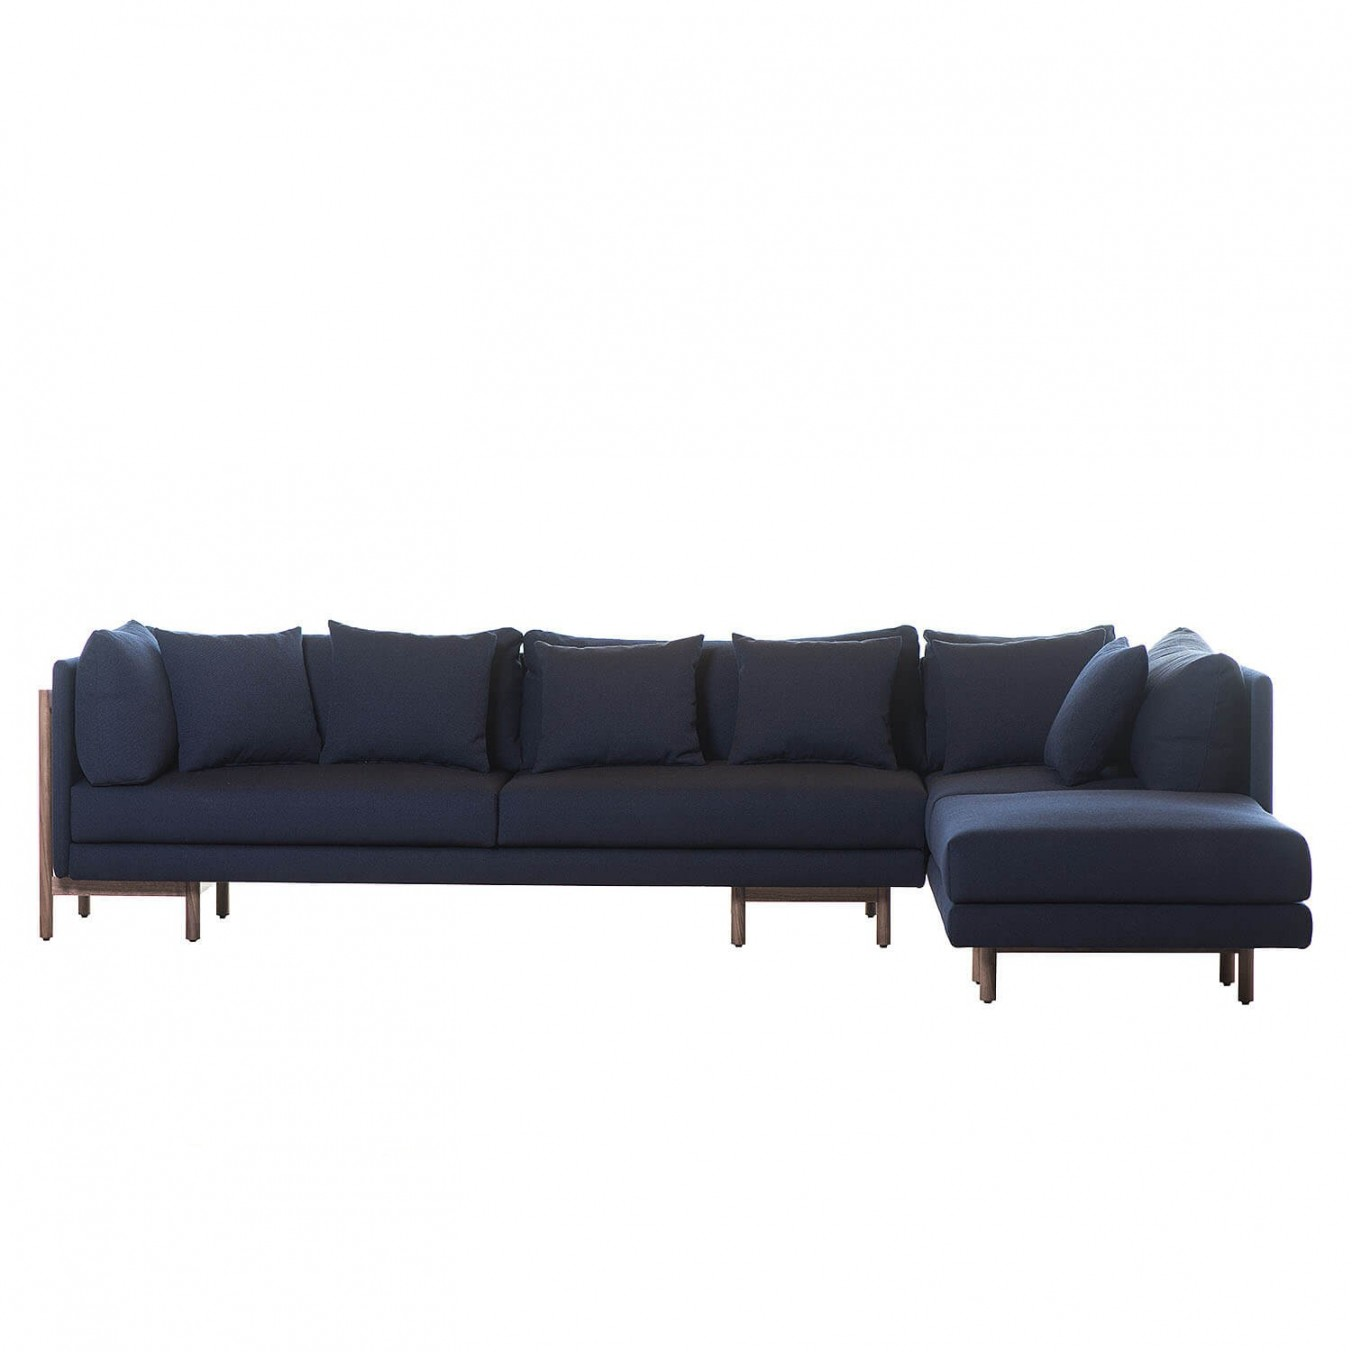 FRAME CORNER UNIT SOFA